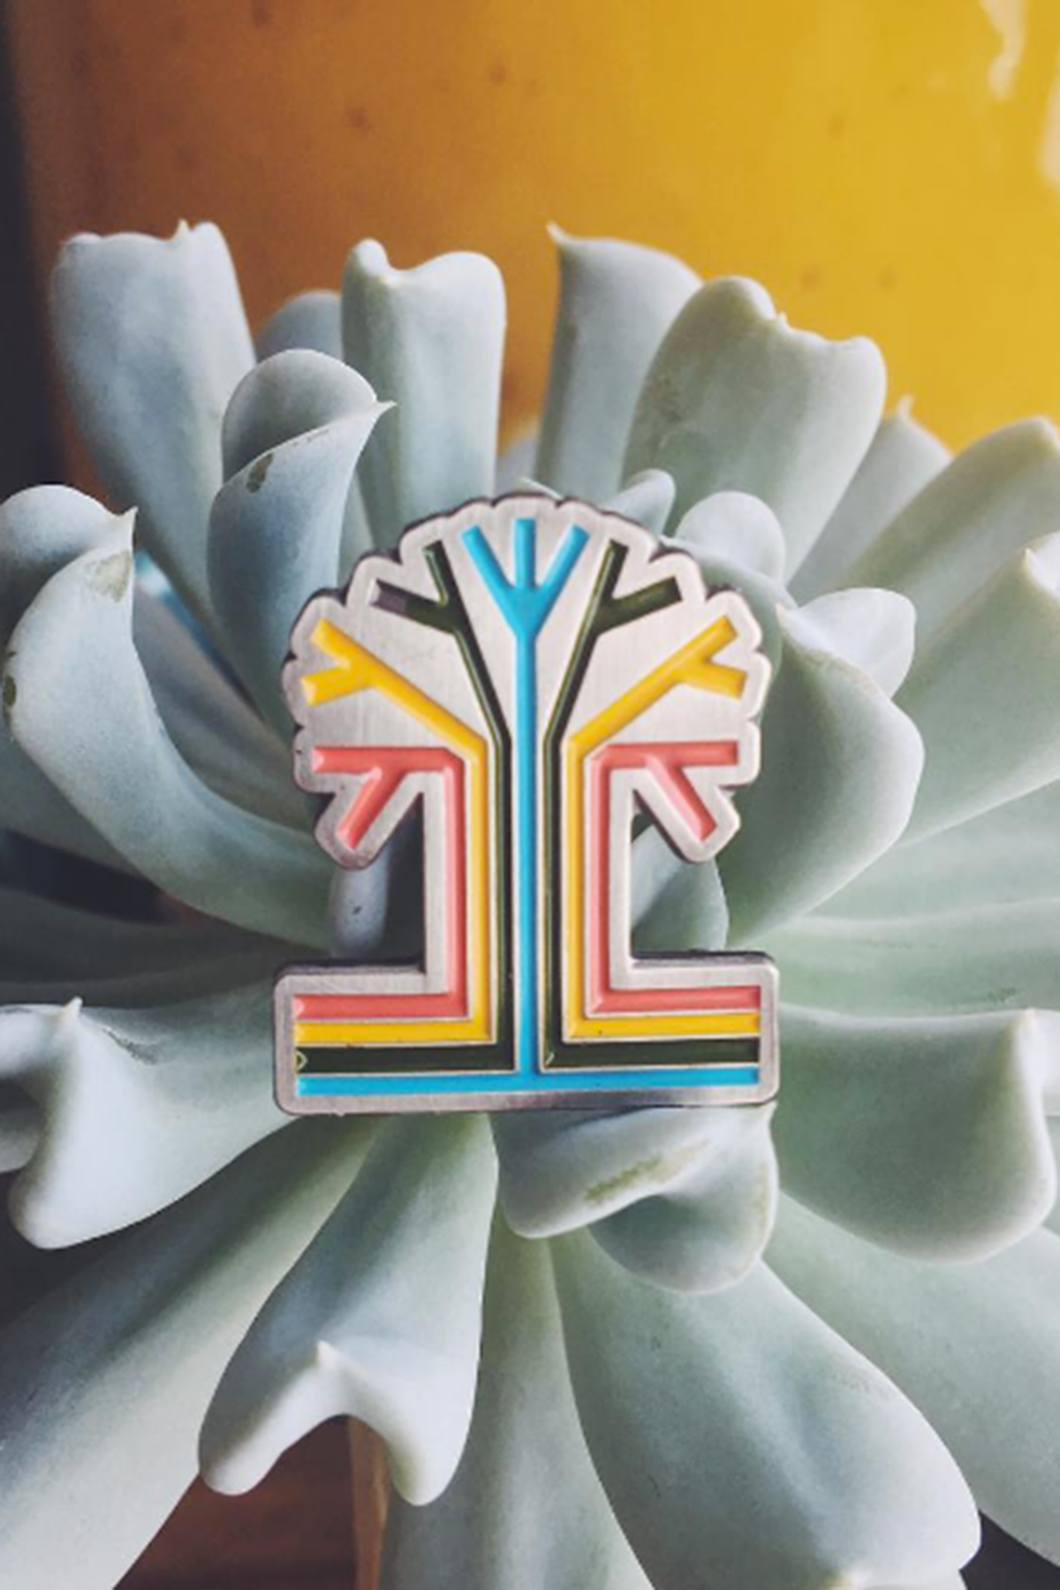 Tigertree Enamel Pin - Tigertree